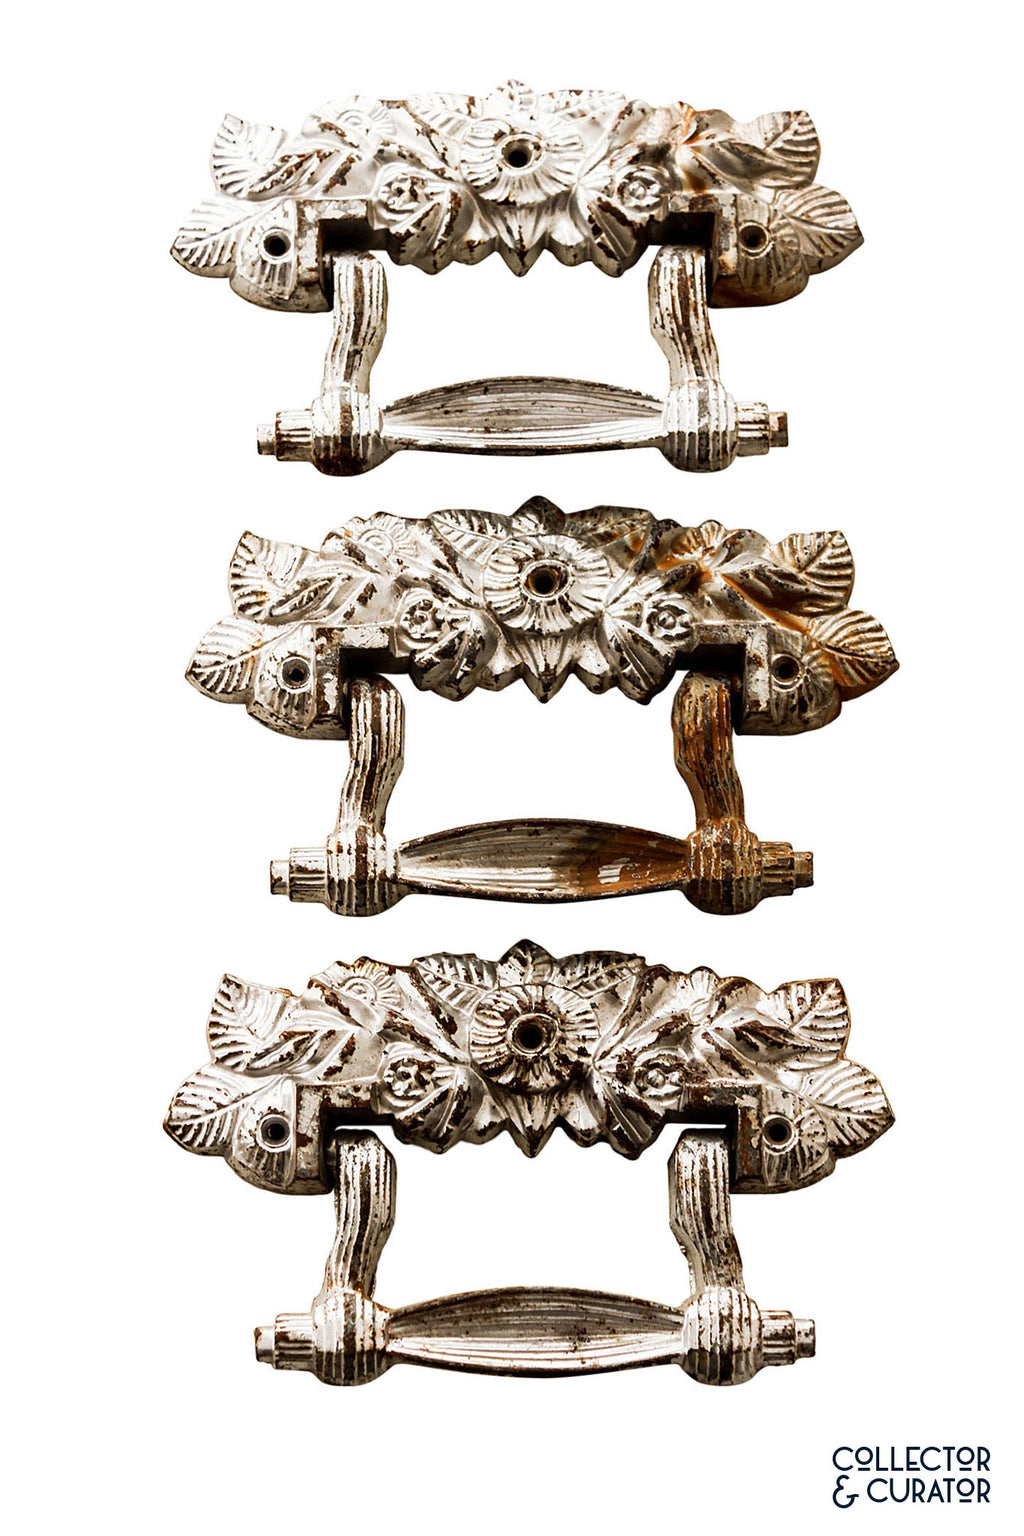 Antique metal drawer pulls- Collector & Curator